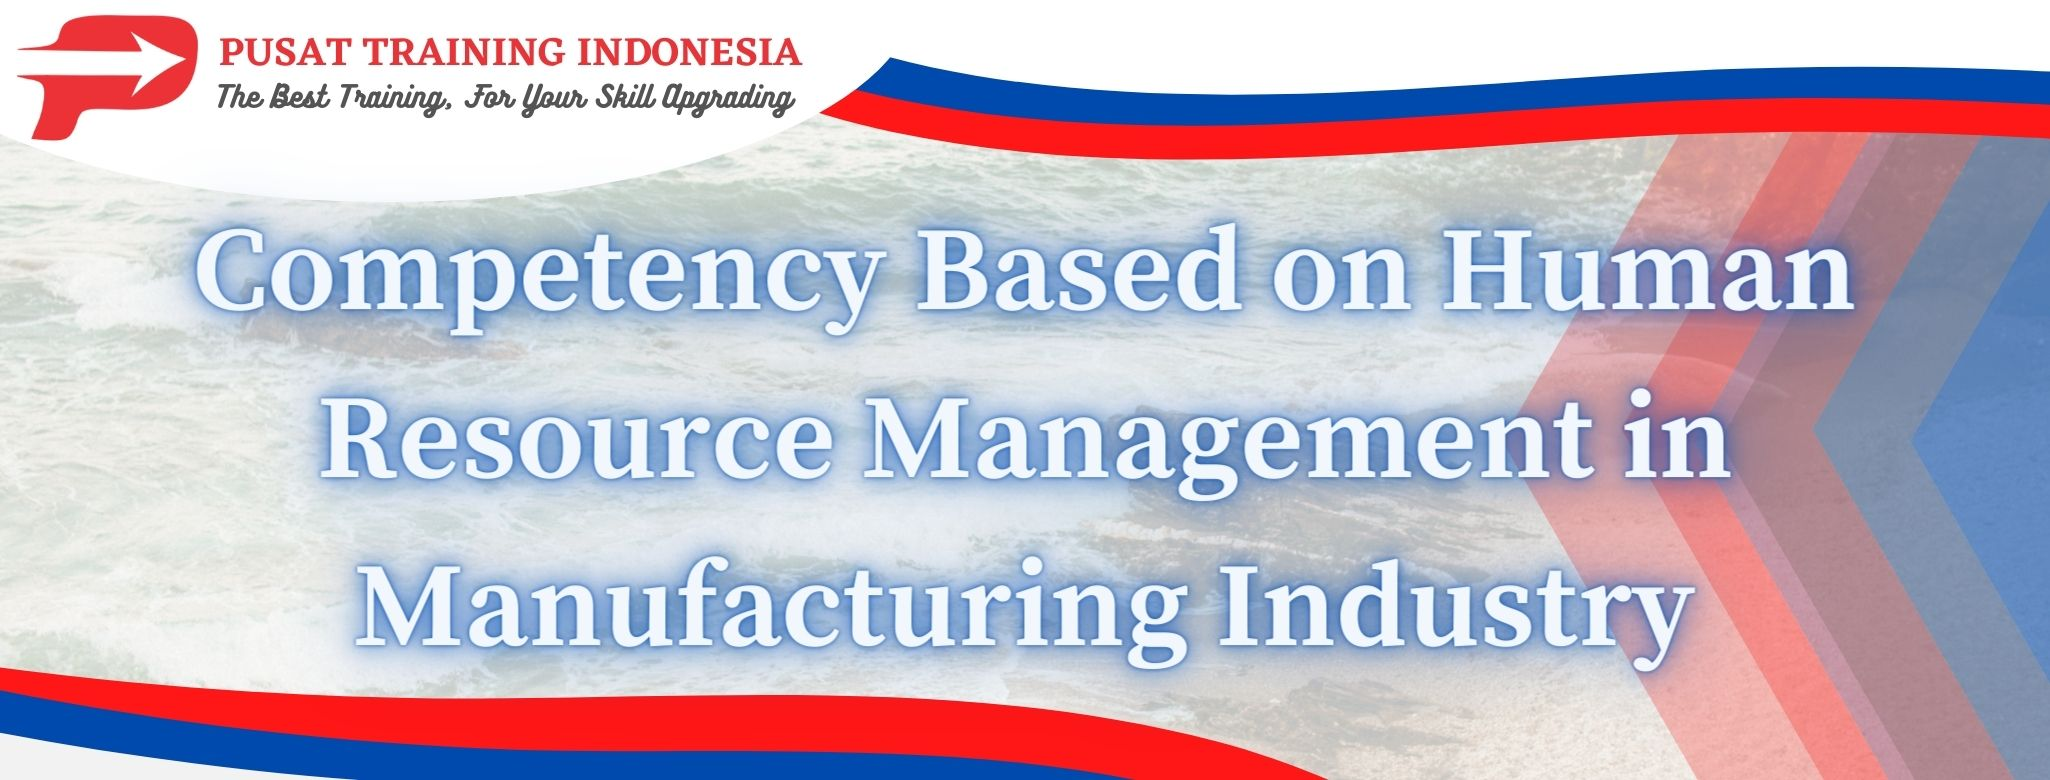 Competency-Based-on-Human-Resource-Management-in-Manufacturing-Industry